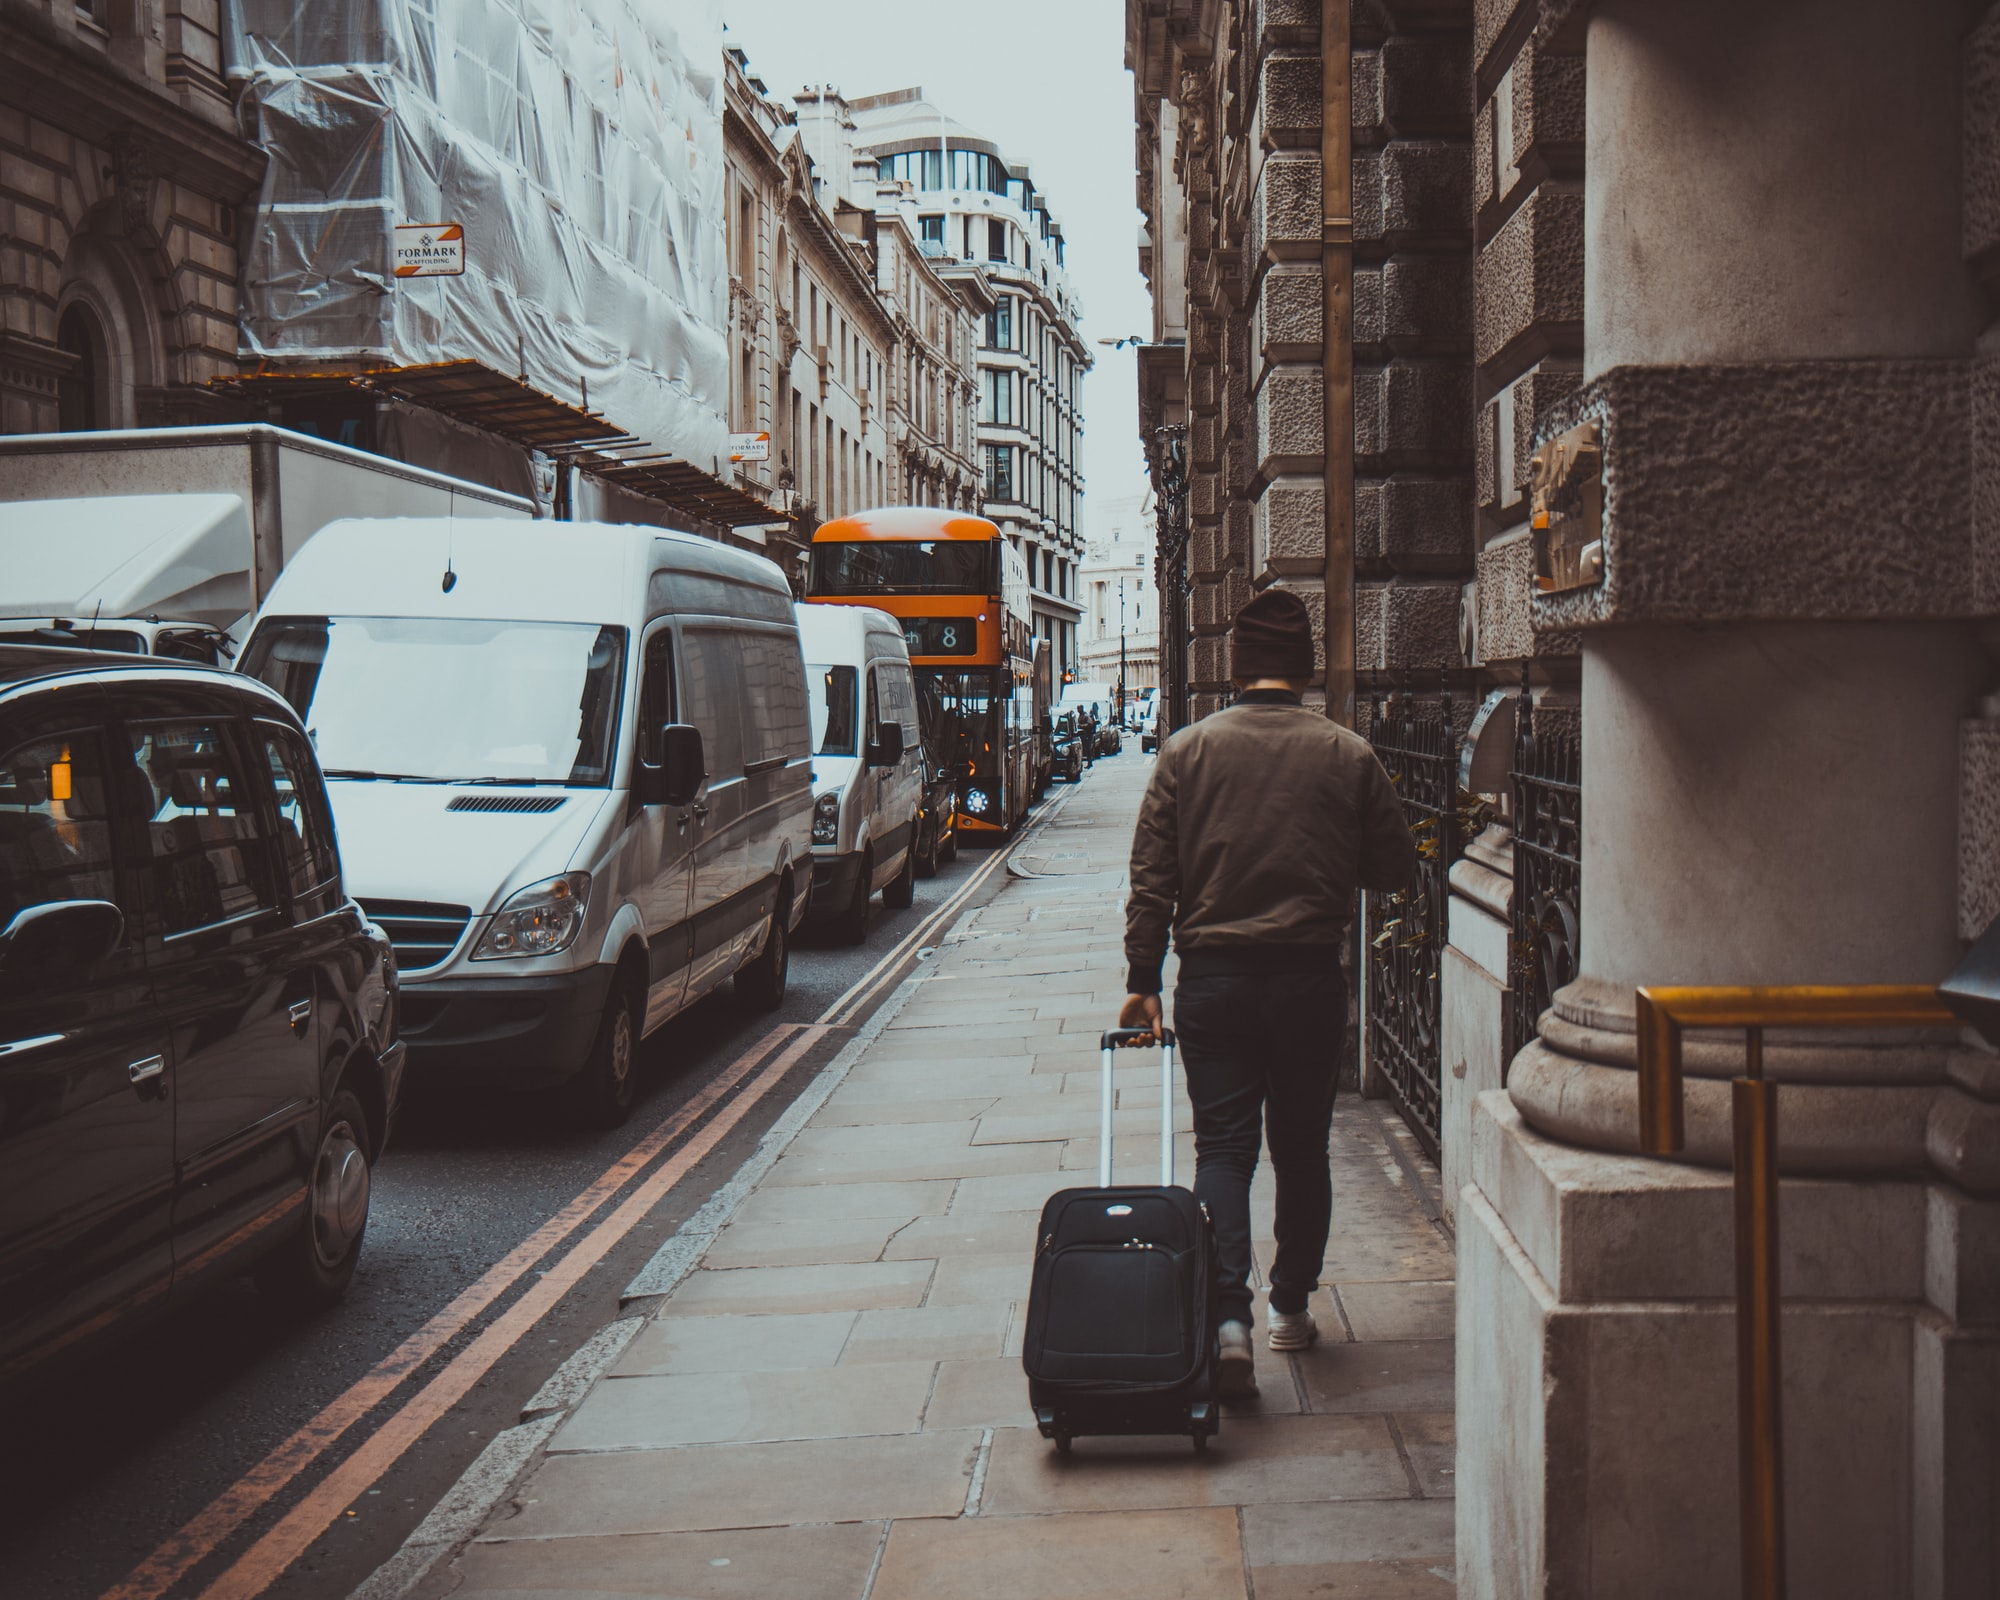 Man walking in the city with a suitcase.